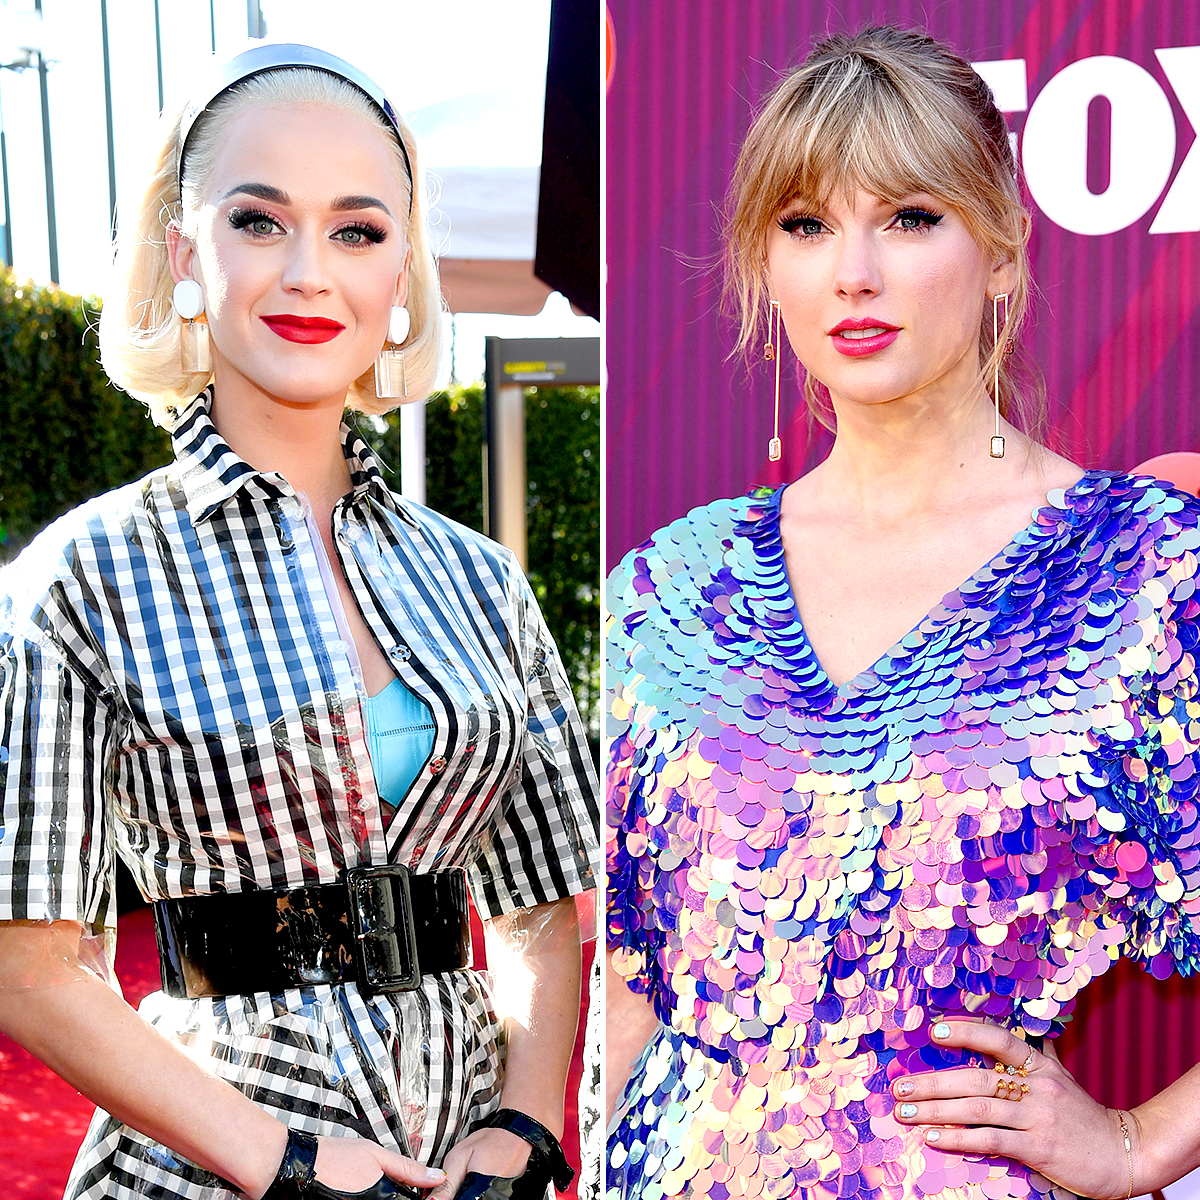 Katy-Perry-Is-'Open'-to-Making-Music-With-Taylor-Swift-After-Feud